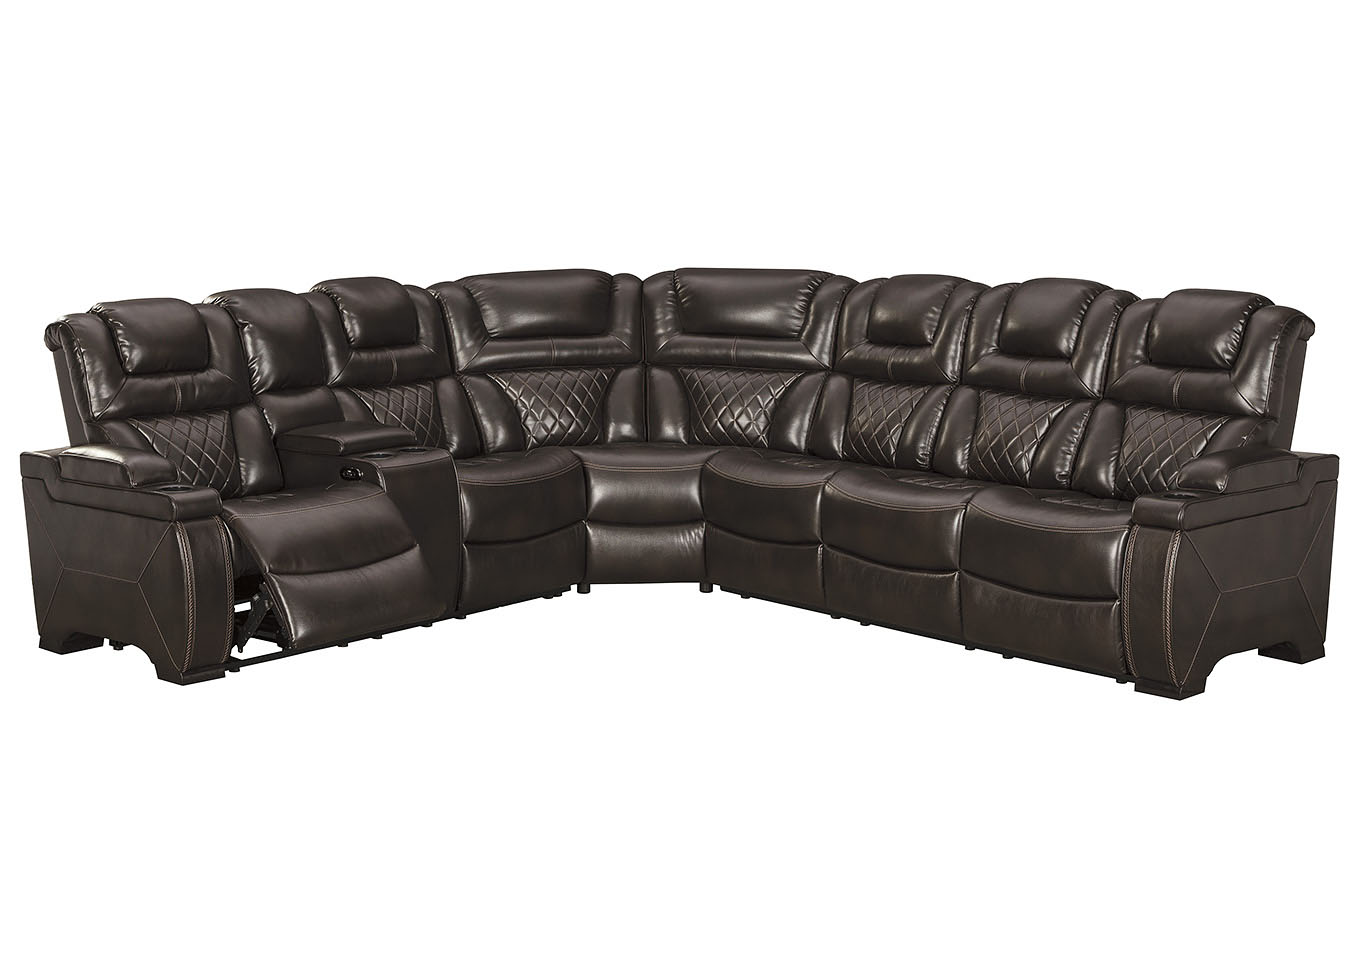 Warnerton Power Reclining Sectional,Signature Design By Ashley